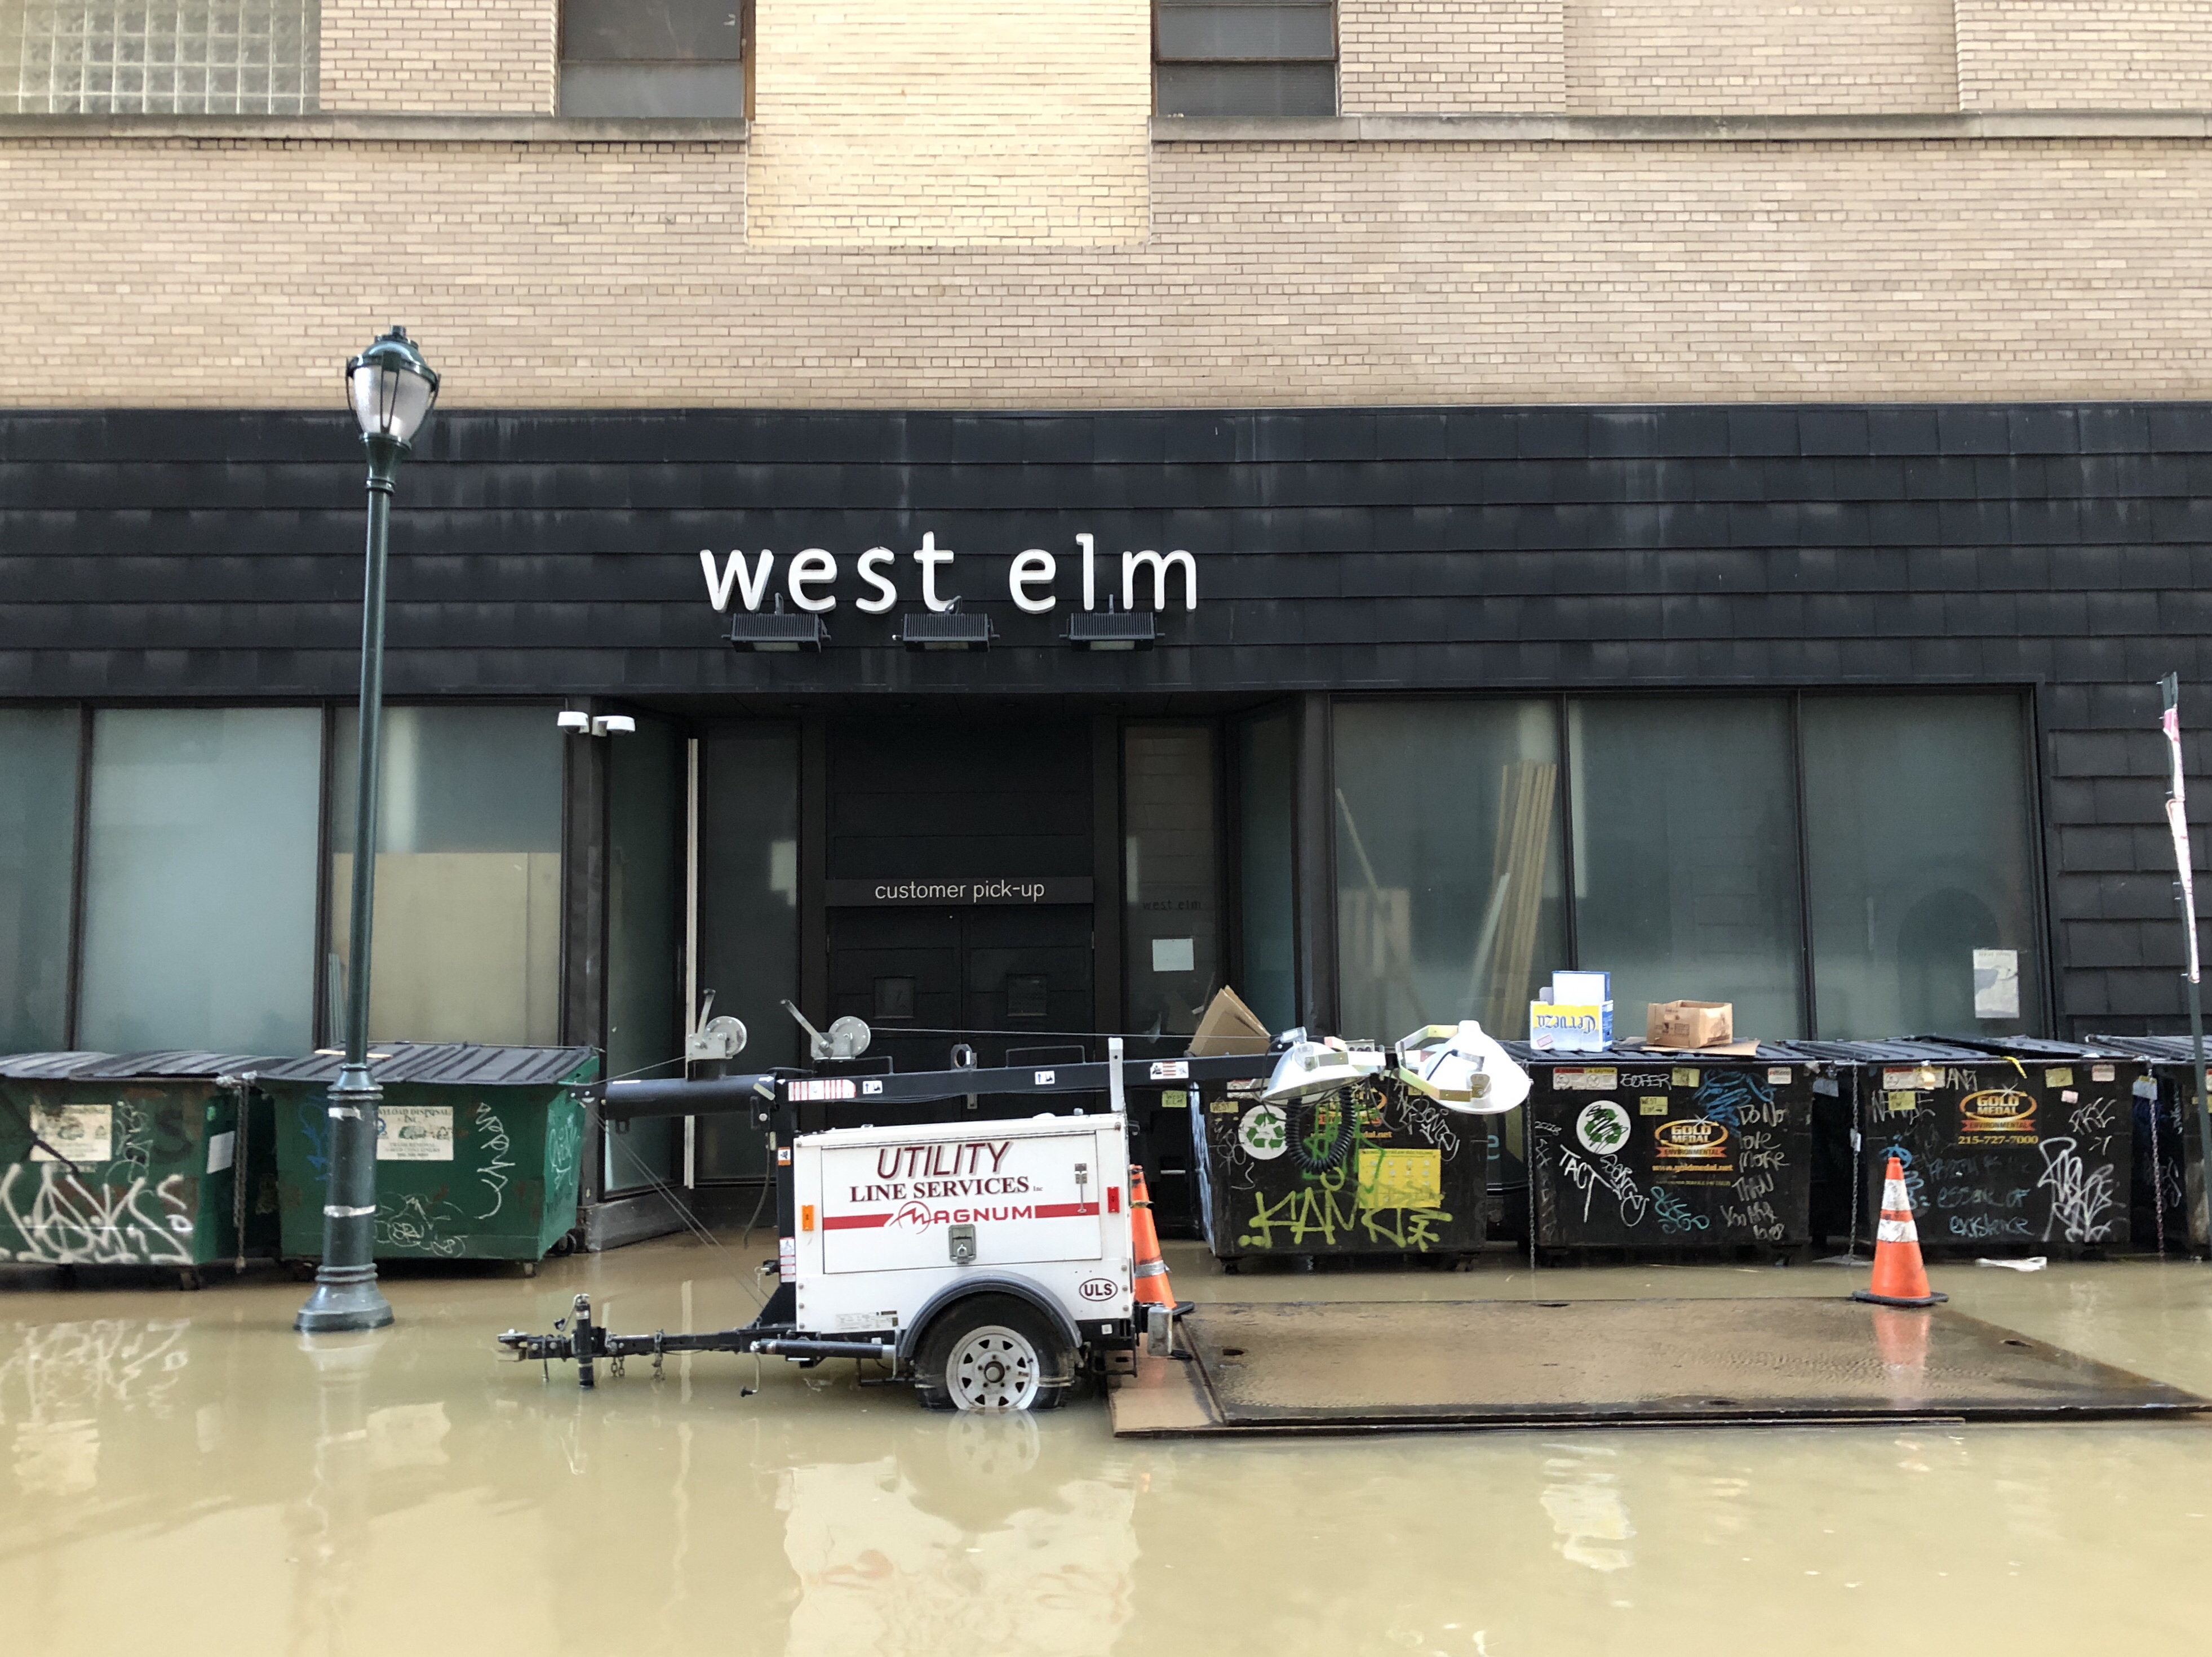 Water main break in Center City on Tuesday, July 3.